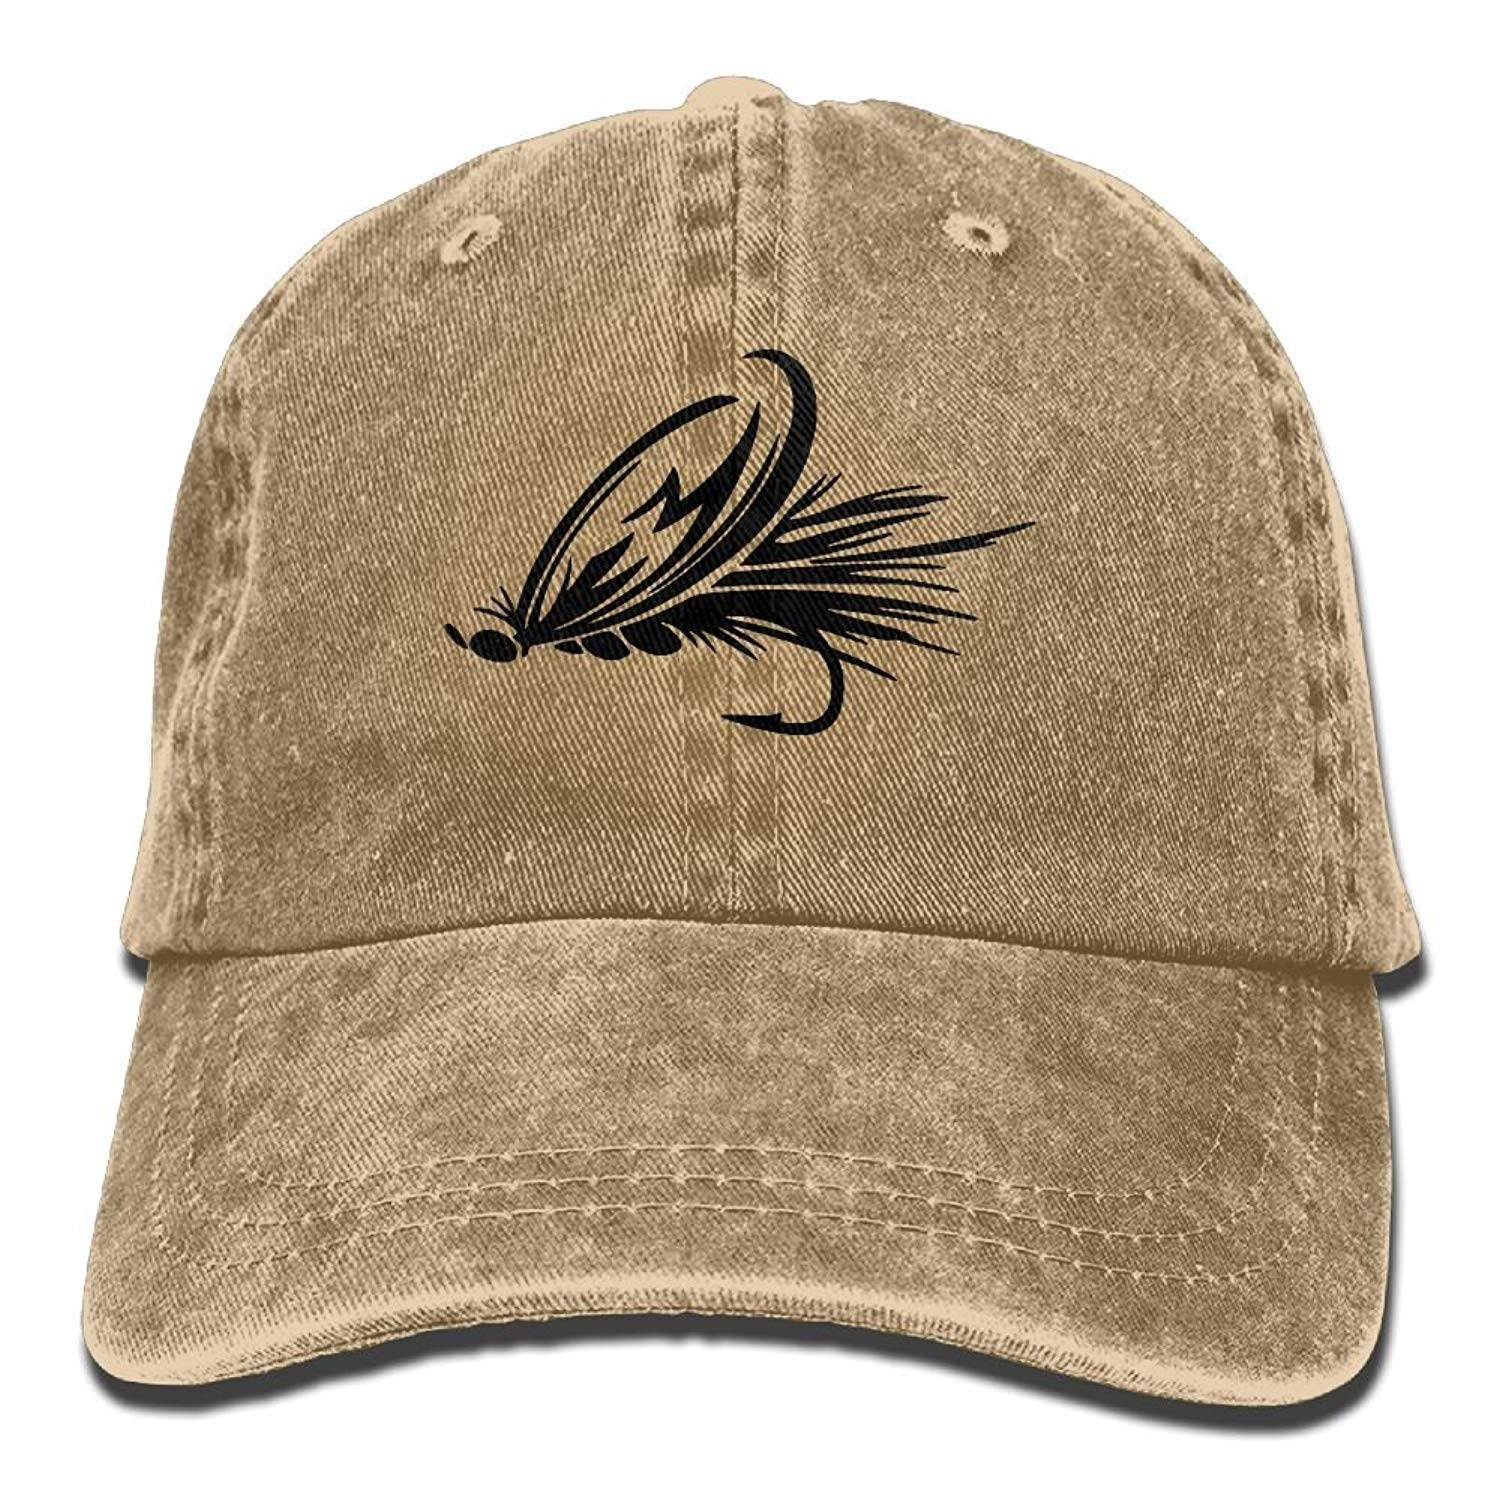 760309758f090 Get Quotations · Gorgeously Fly Fishing Lure Denim Baseball Caps Hat  Adjustable Cotton Sport Strap Cap for Men Women